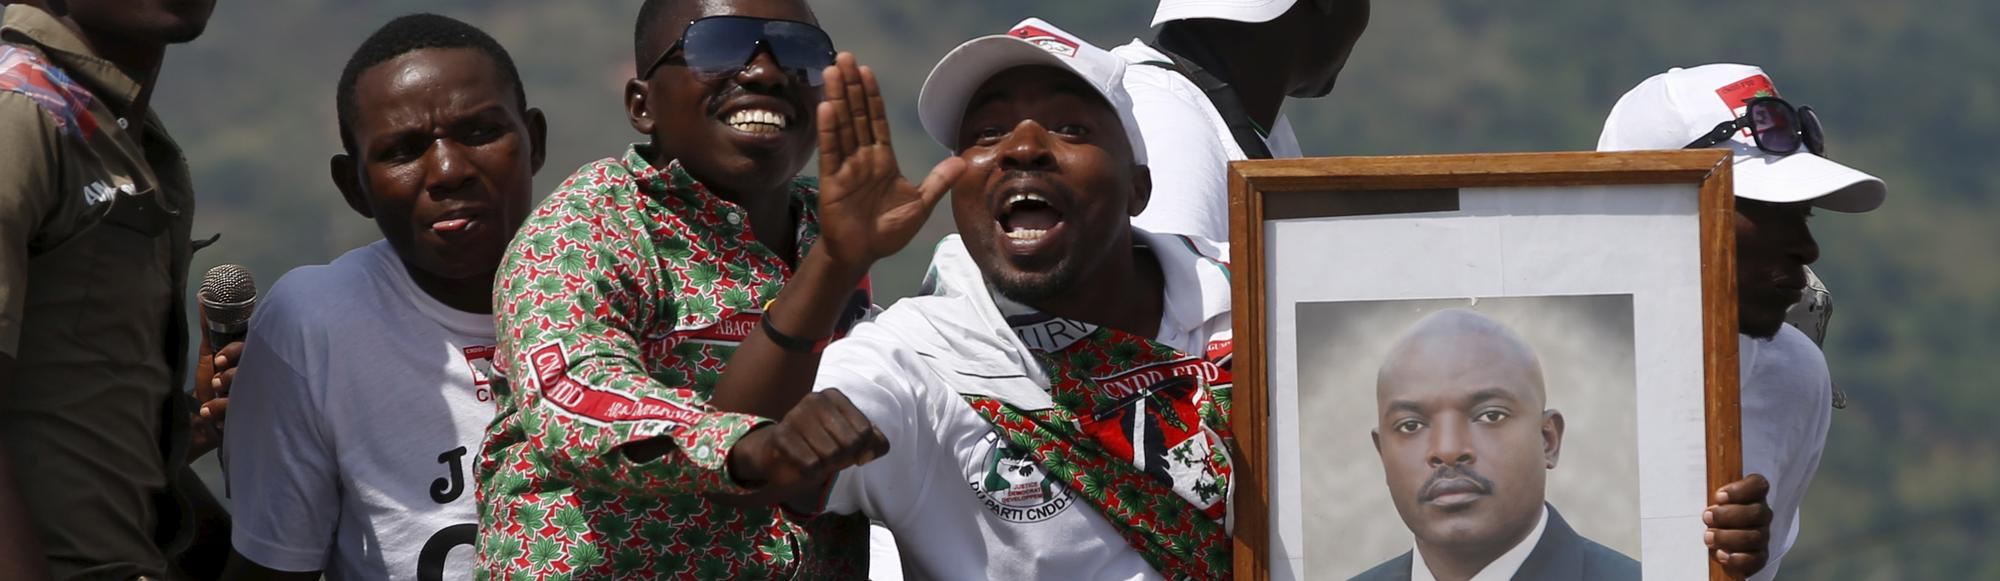 Burundi's Response to Coup Said to be Brutal as Embattled President Reclaims Control